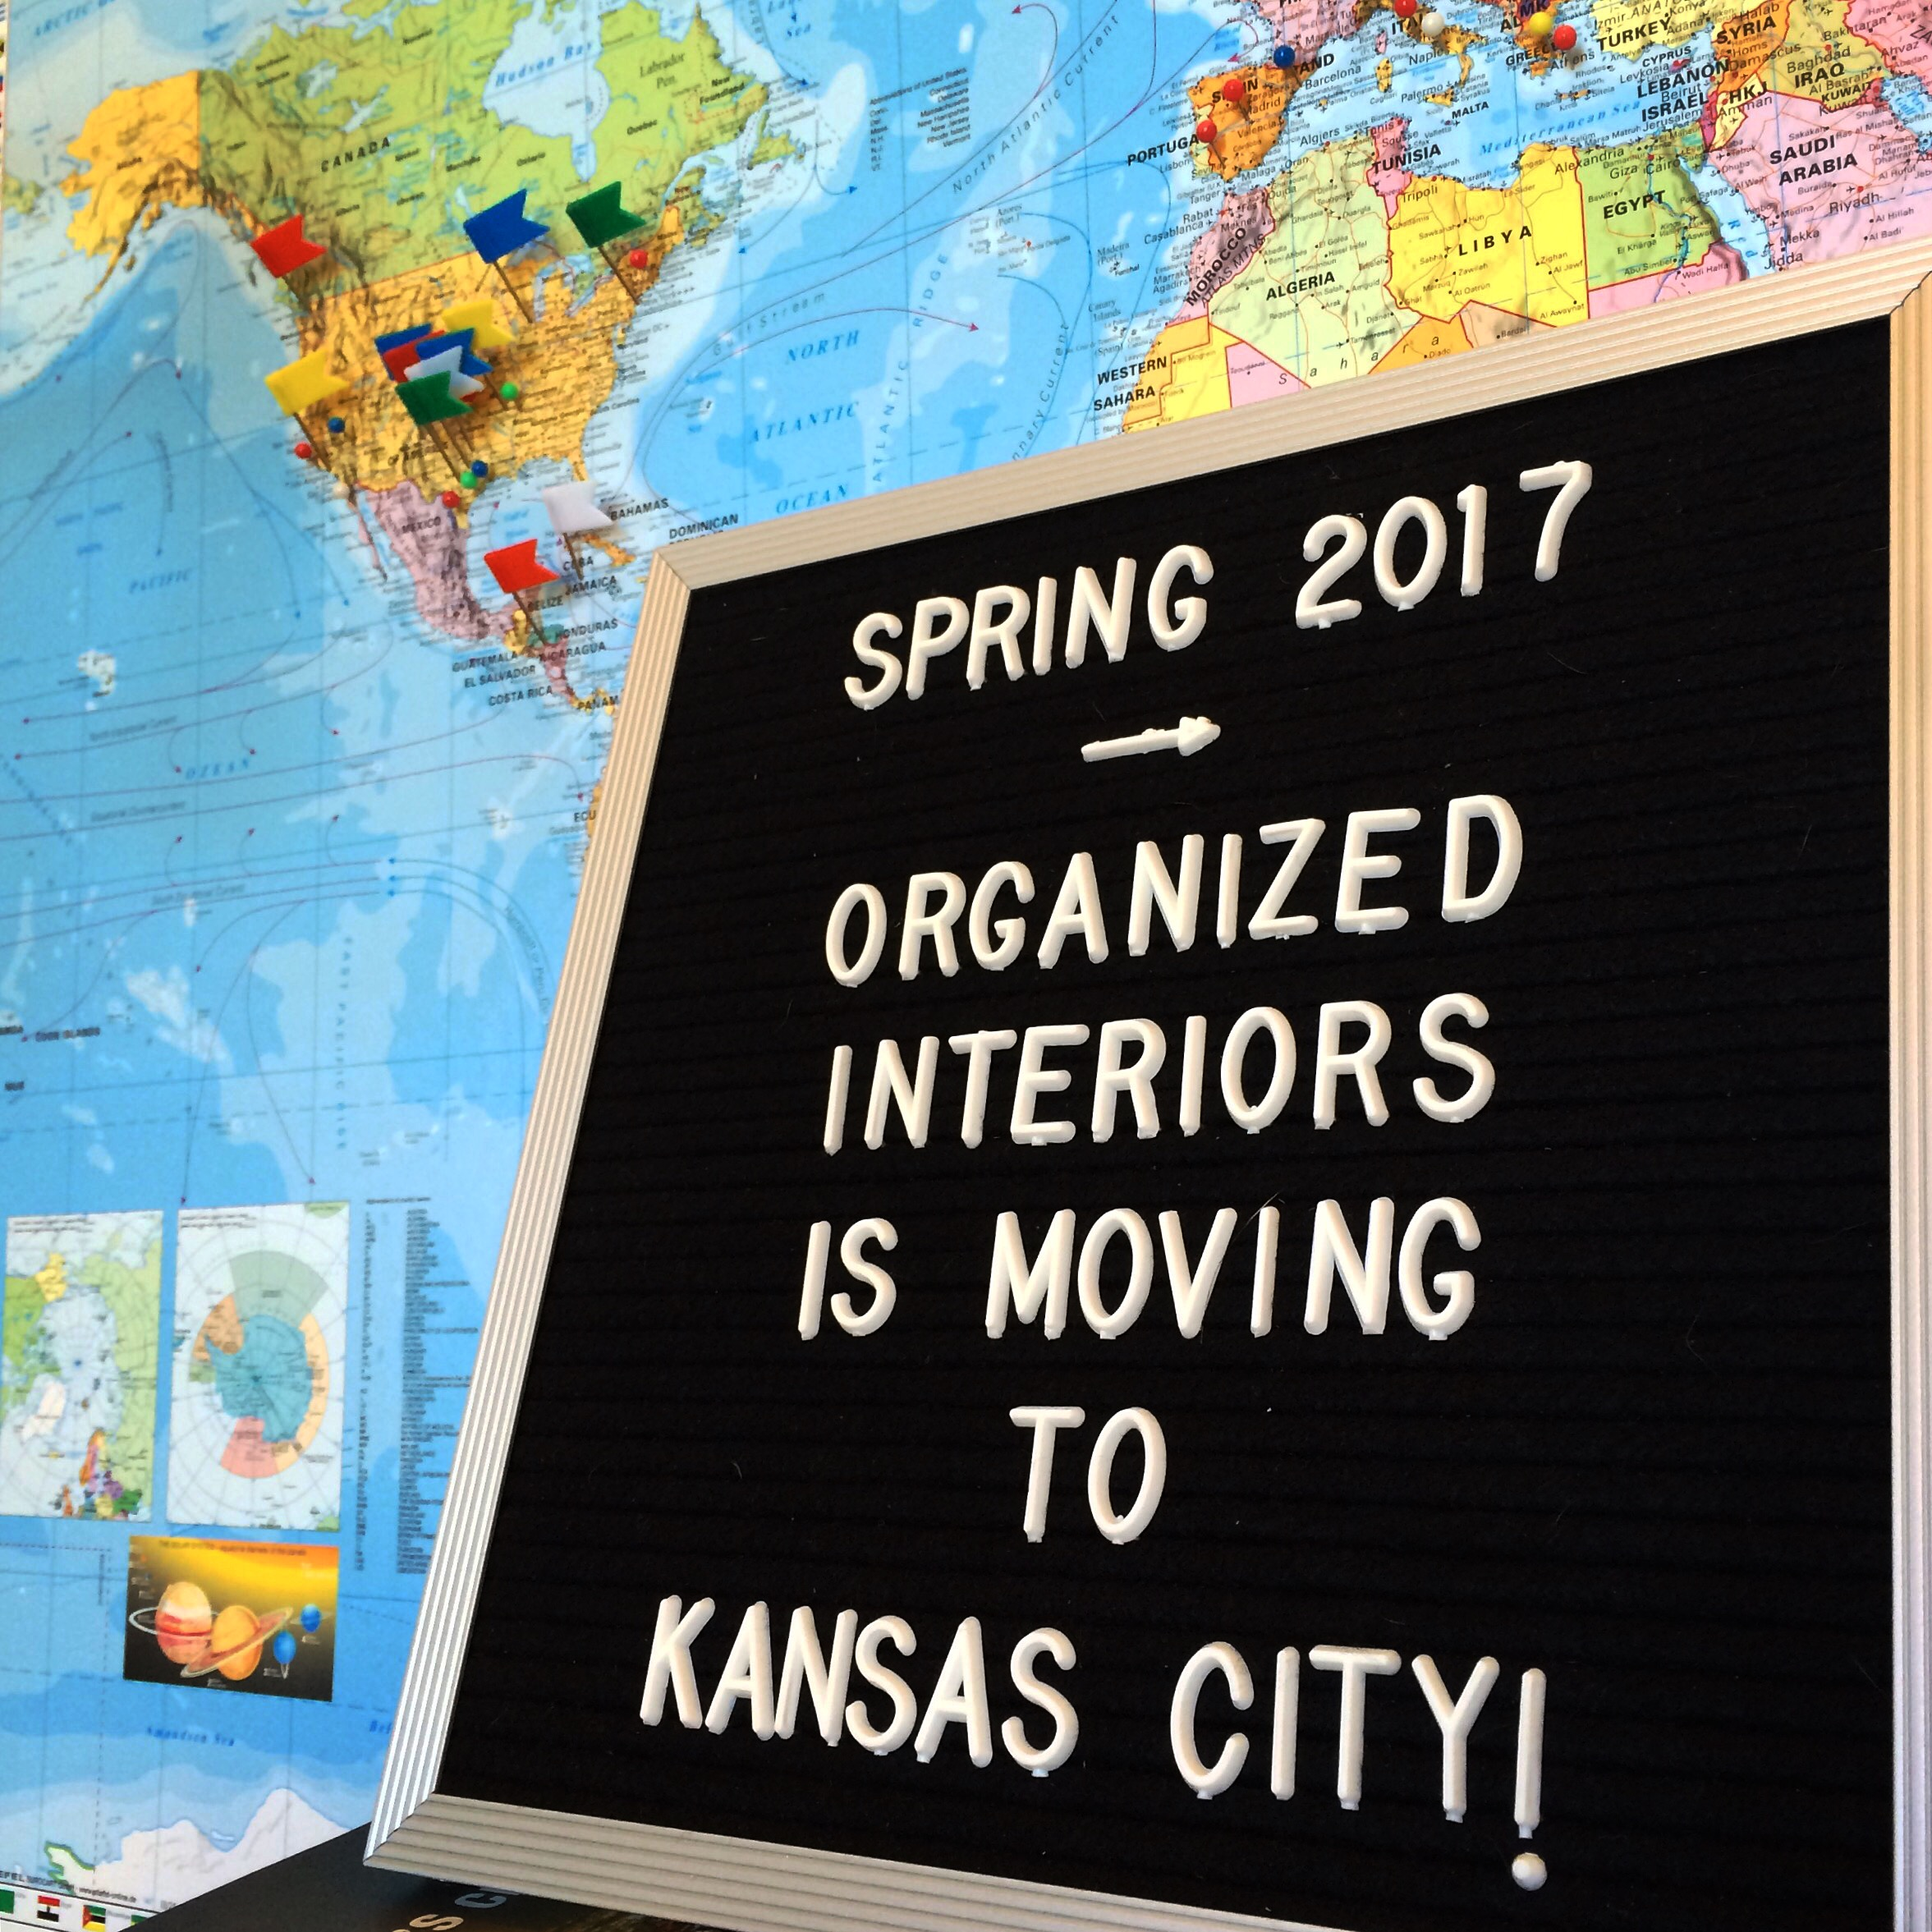 Organized Interiors is moving to Kansas City!